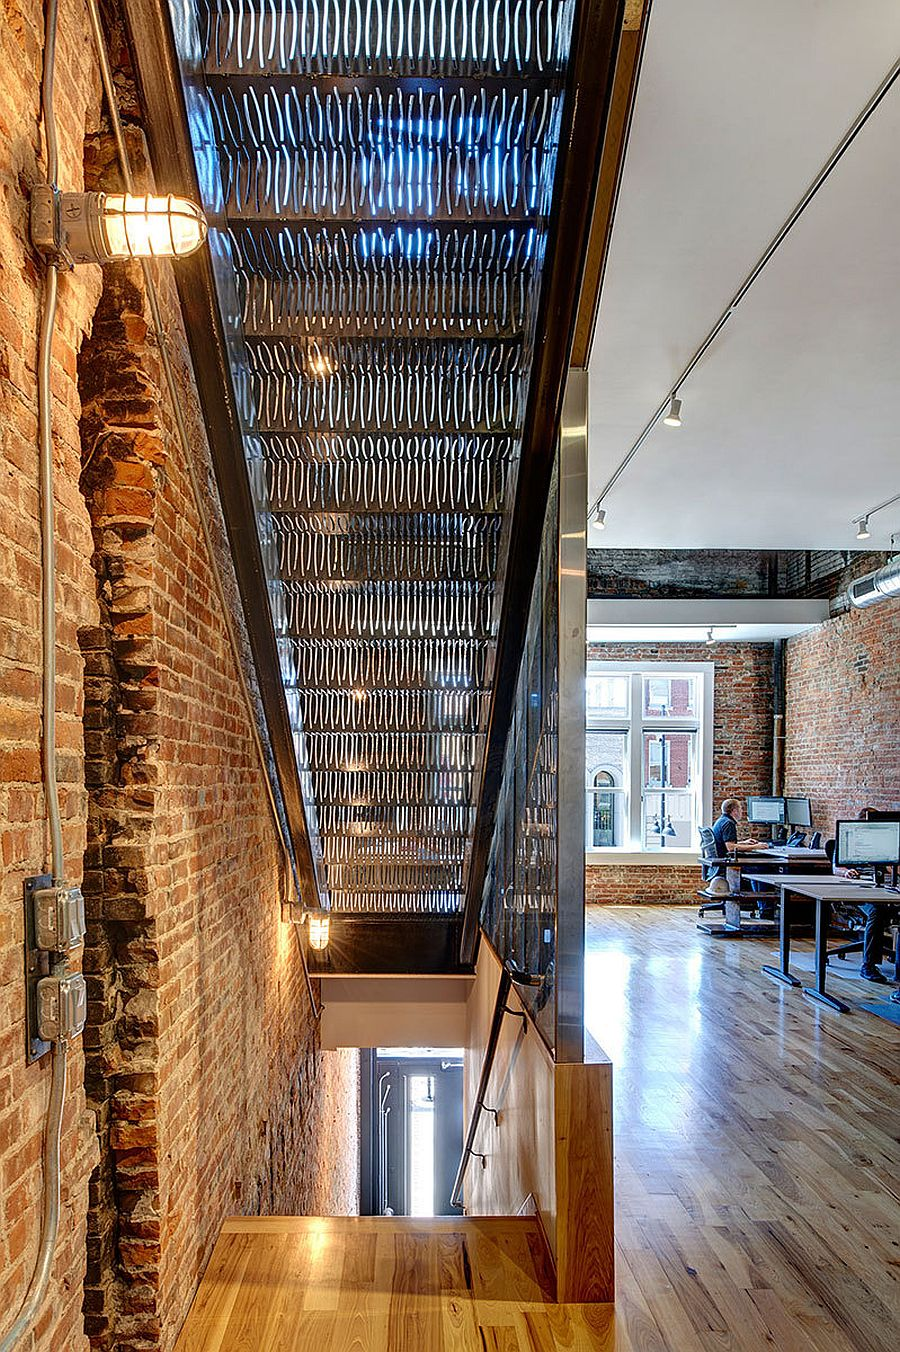 Metal brick and wood interior of the office space